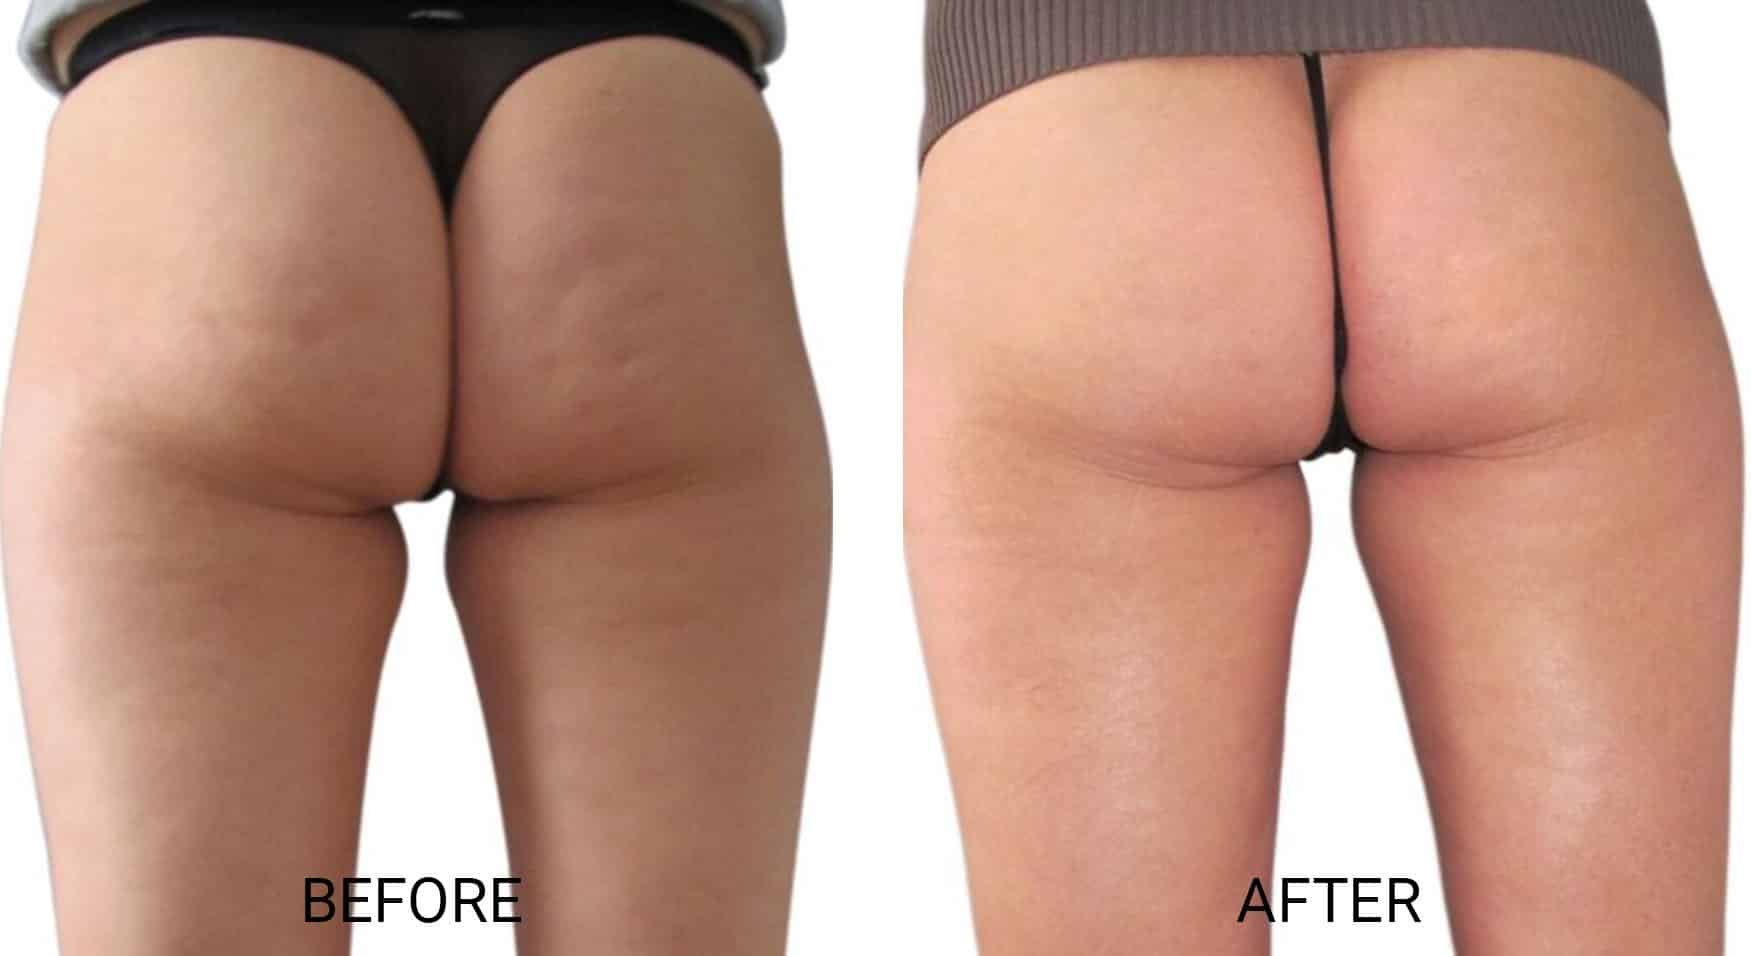 Venus Legacy® for Cellulite on Butt Cheeks